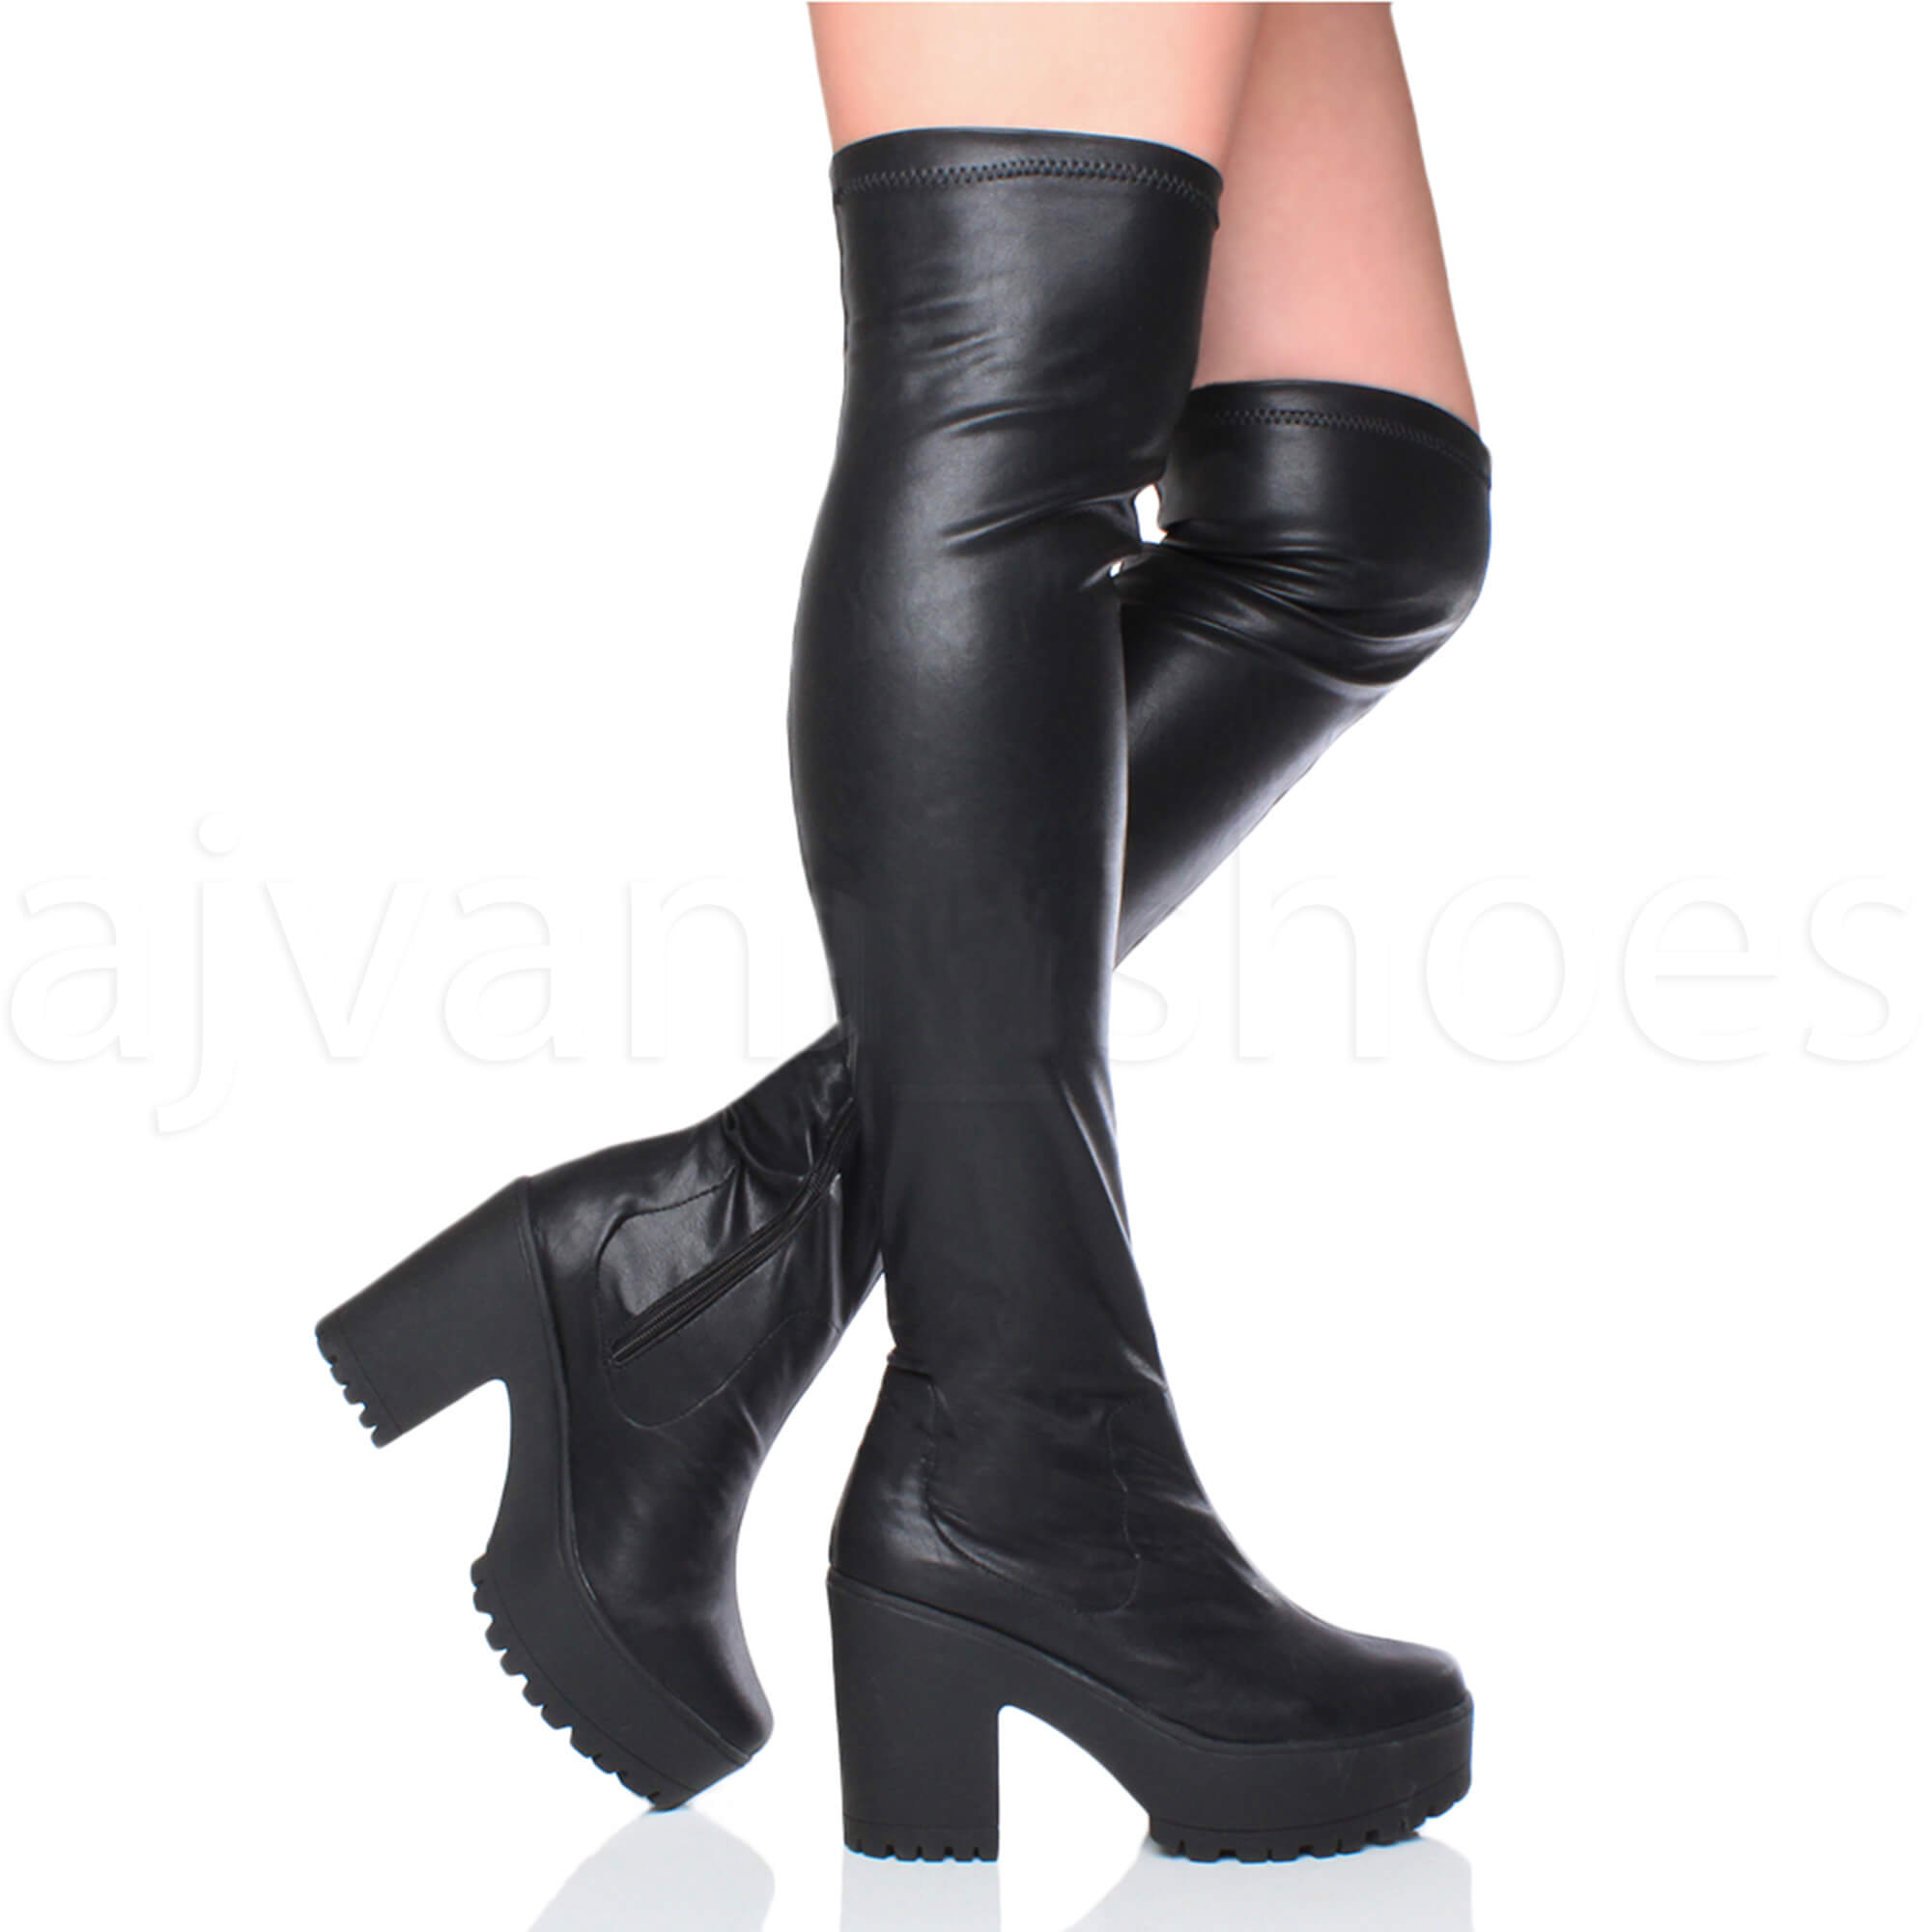 63ec0f87ddd WOMENS LADIES OVER THE KNEE THIGH HIGH CHUNKY PLATFORM HEEL STRETCH ...